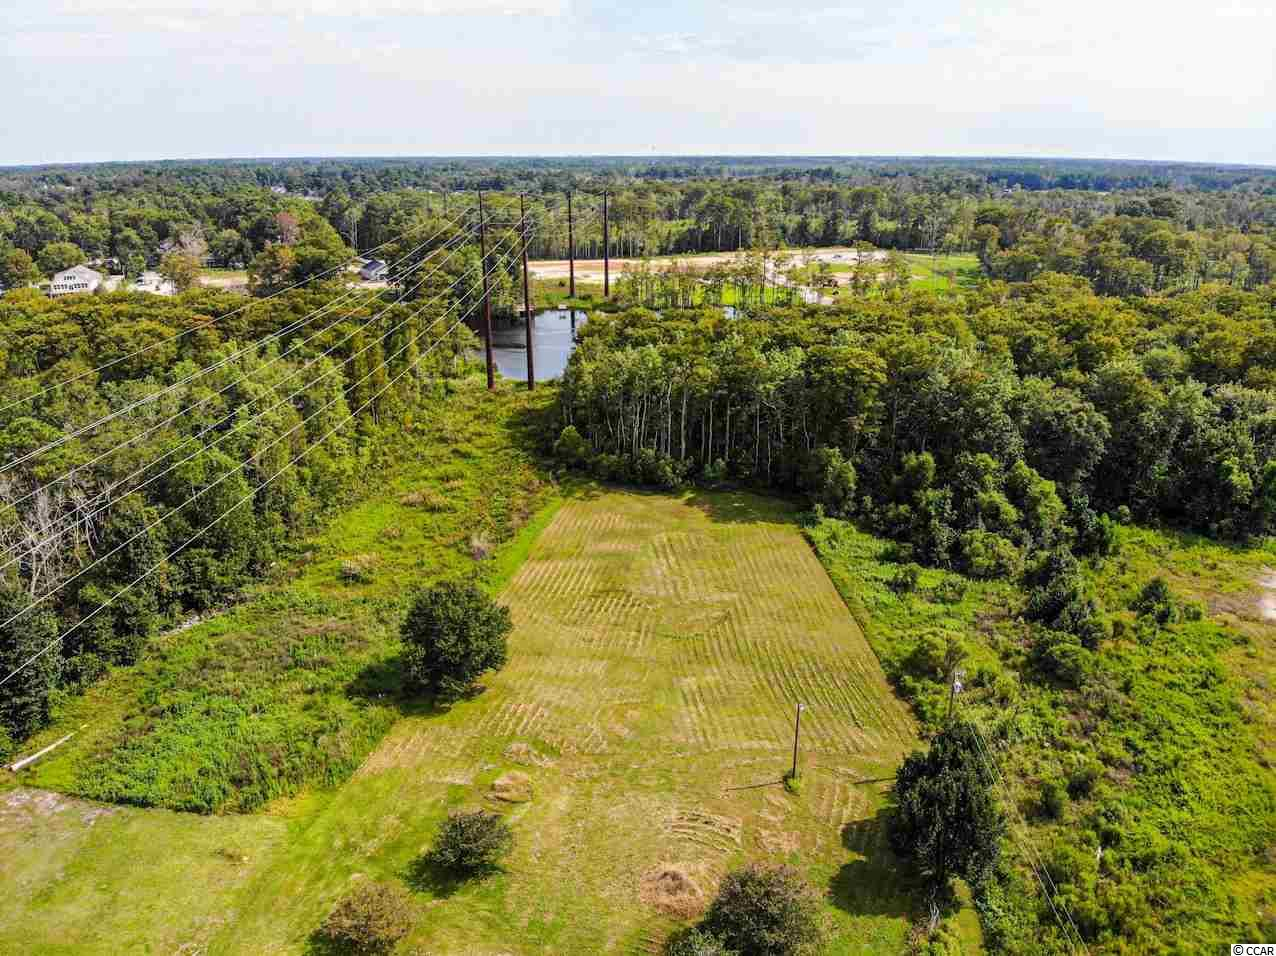 This beautiful lot located ON THE INTRACOASTAL WATERWAY is almost TWO ACRES of land! An amazing location with NO HOA!! Being in a great location, you are just minutes from Market Commons, Broadway at the Beach, the beach, restaurants, and so much more! This extremely well-kept lot is the perfect opportunity to build your dream home!